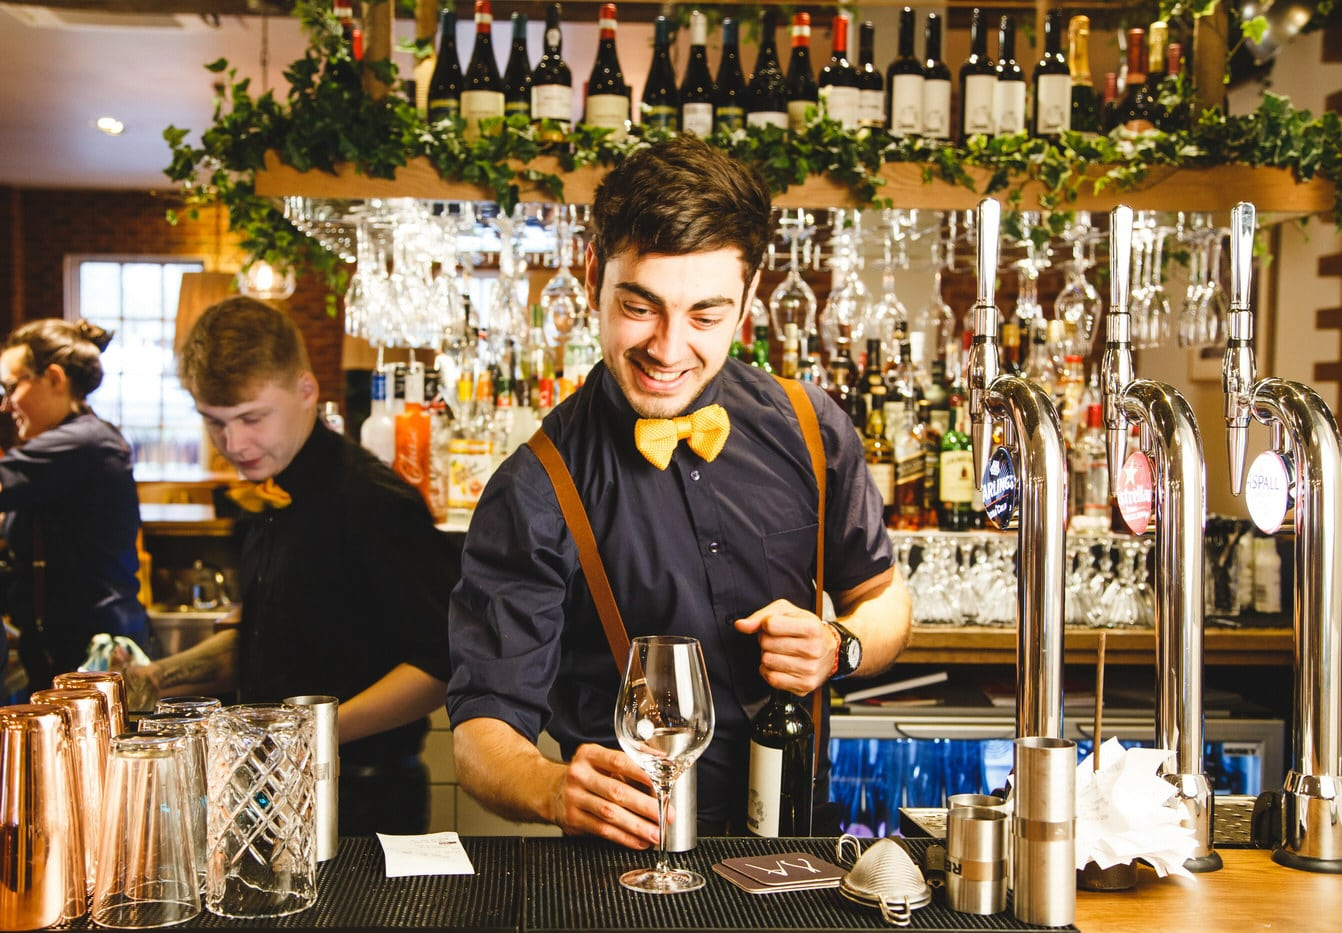 A bartender in braces and bow tie sets up a wine glass on the bar of Saint Pauls House